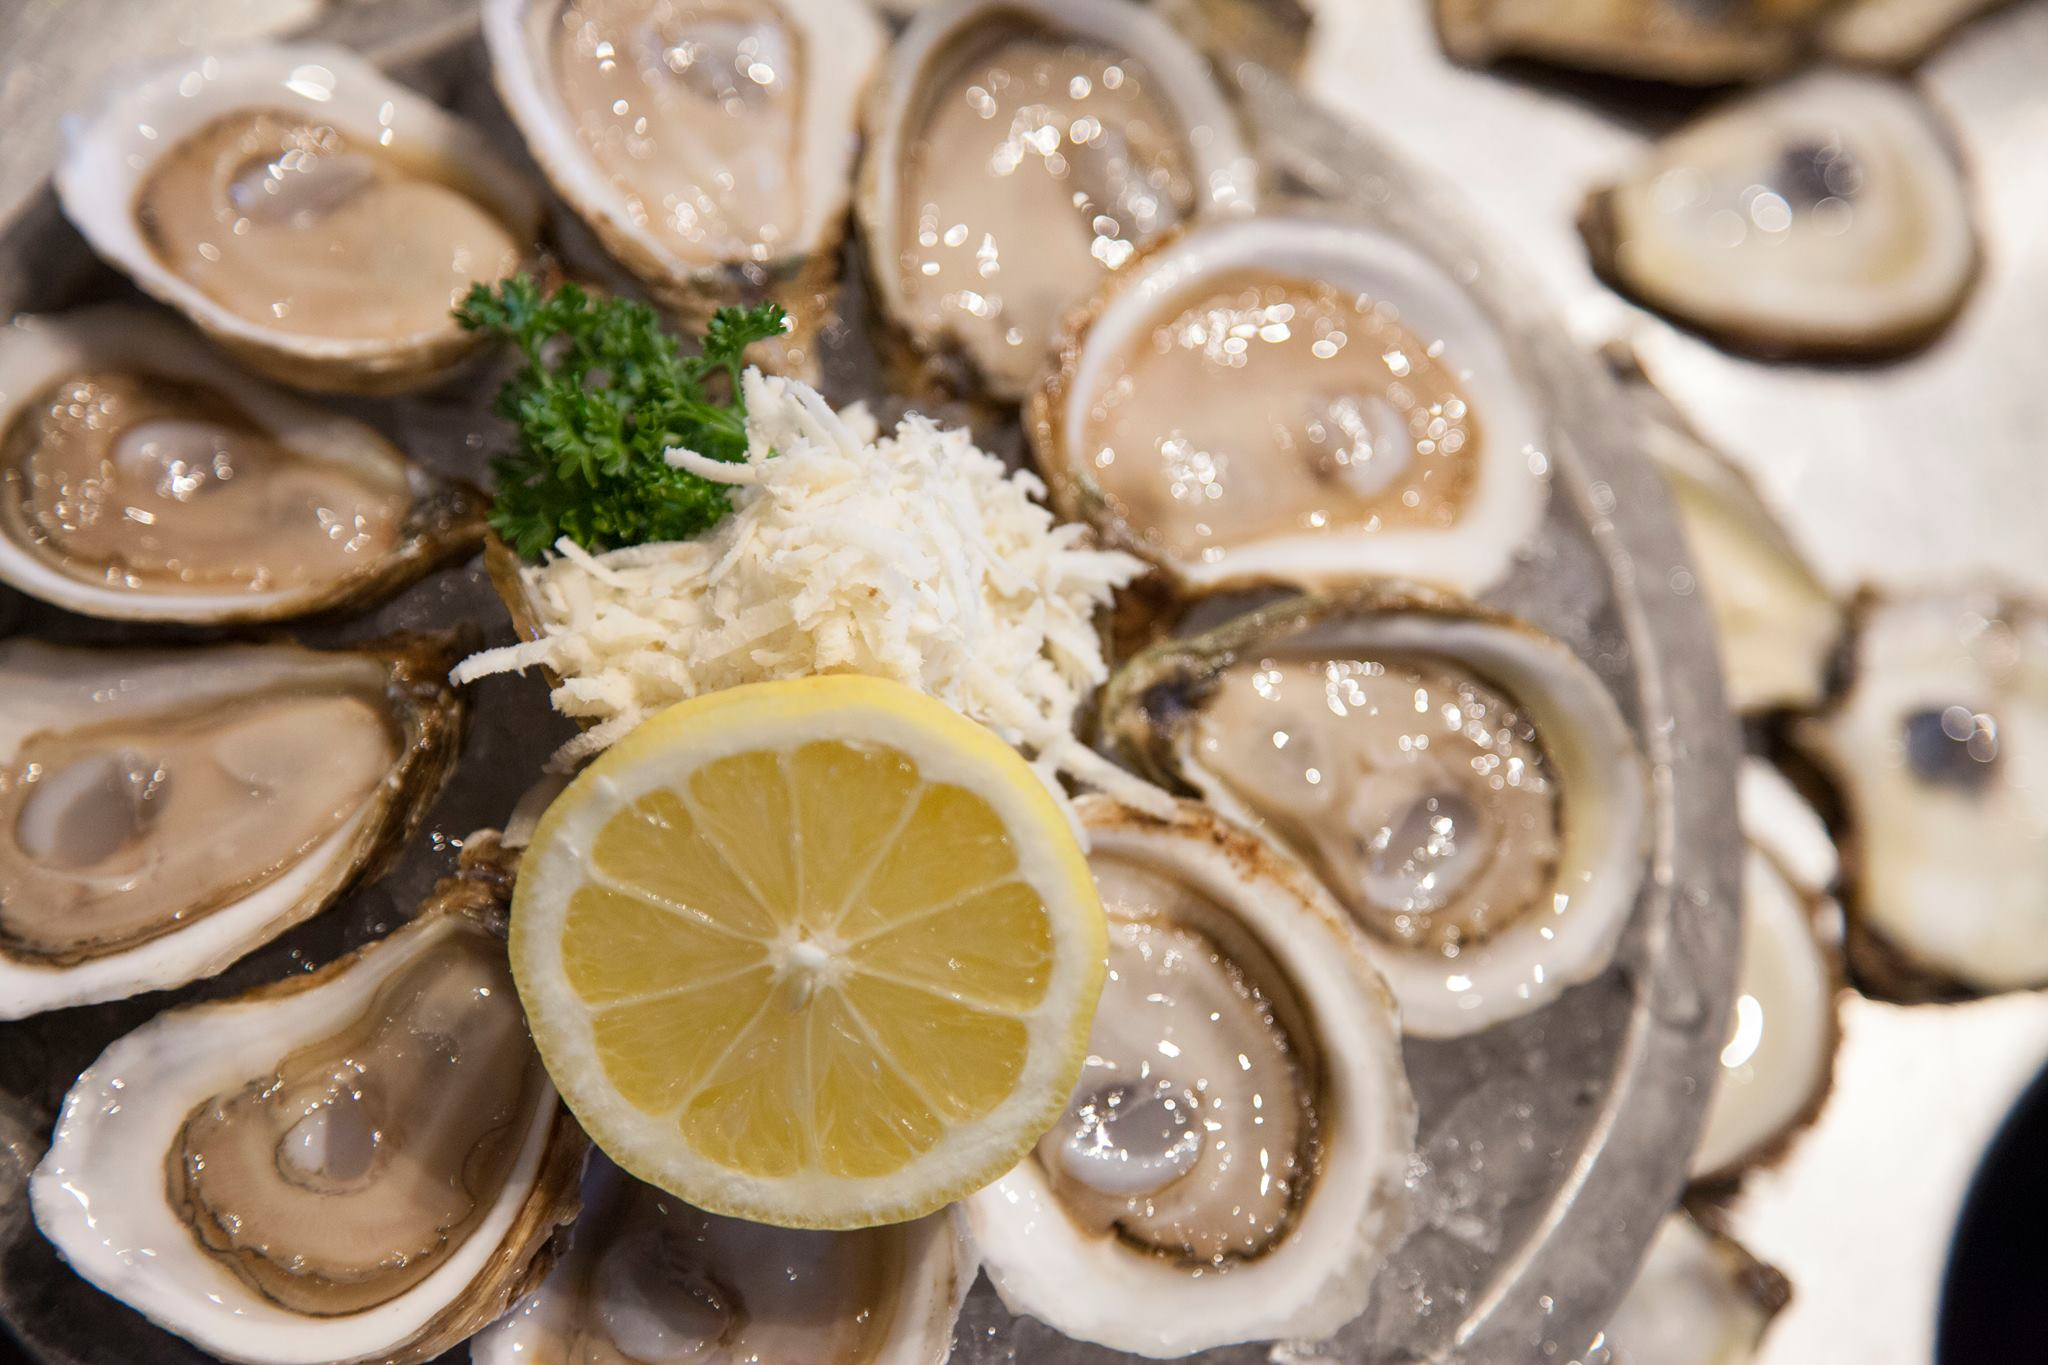 Chewies-fresh-raw-oysters